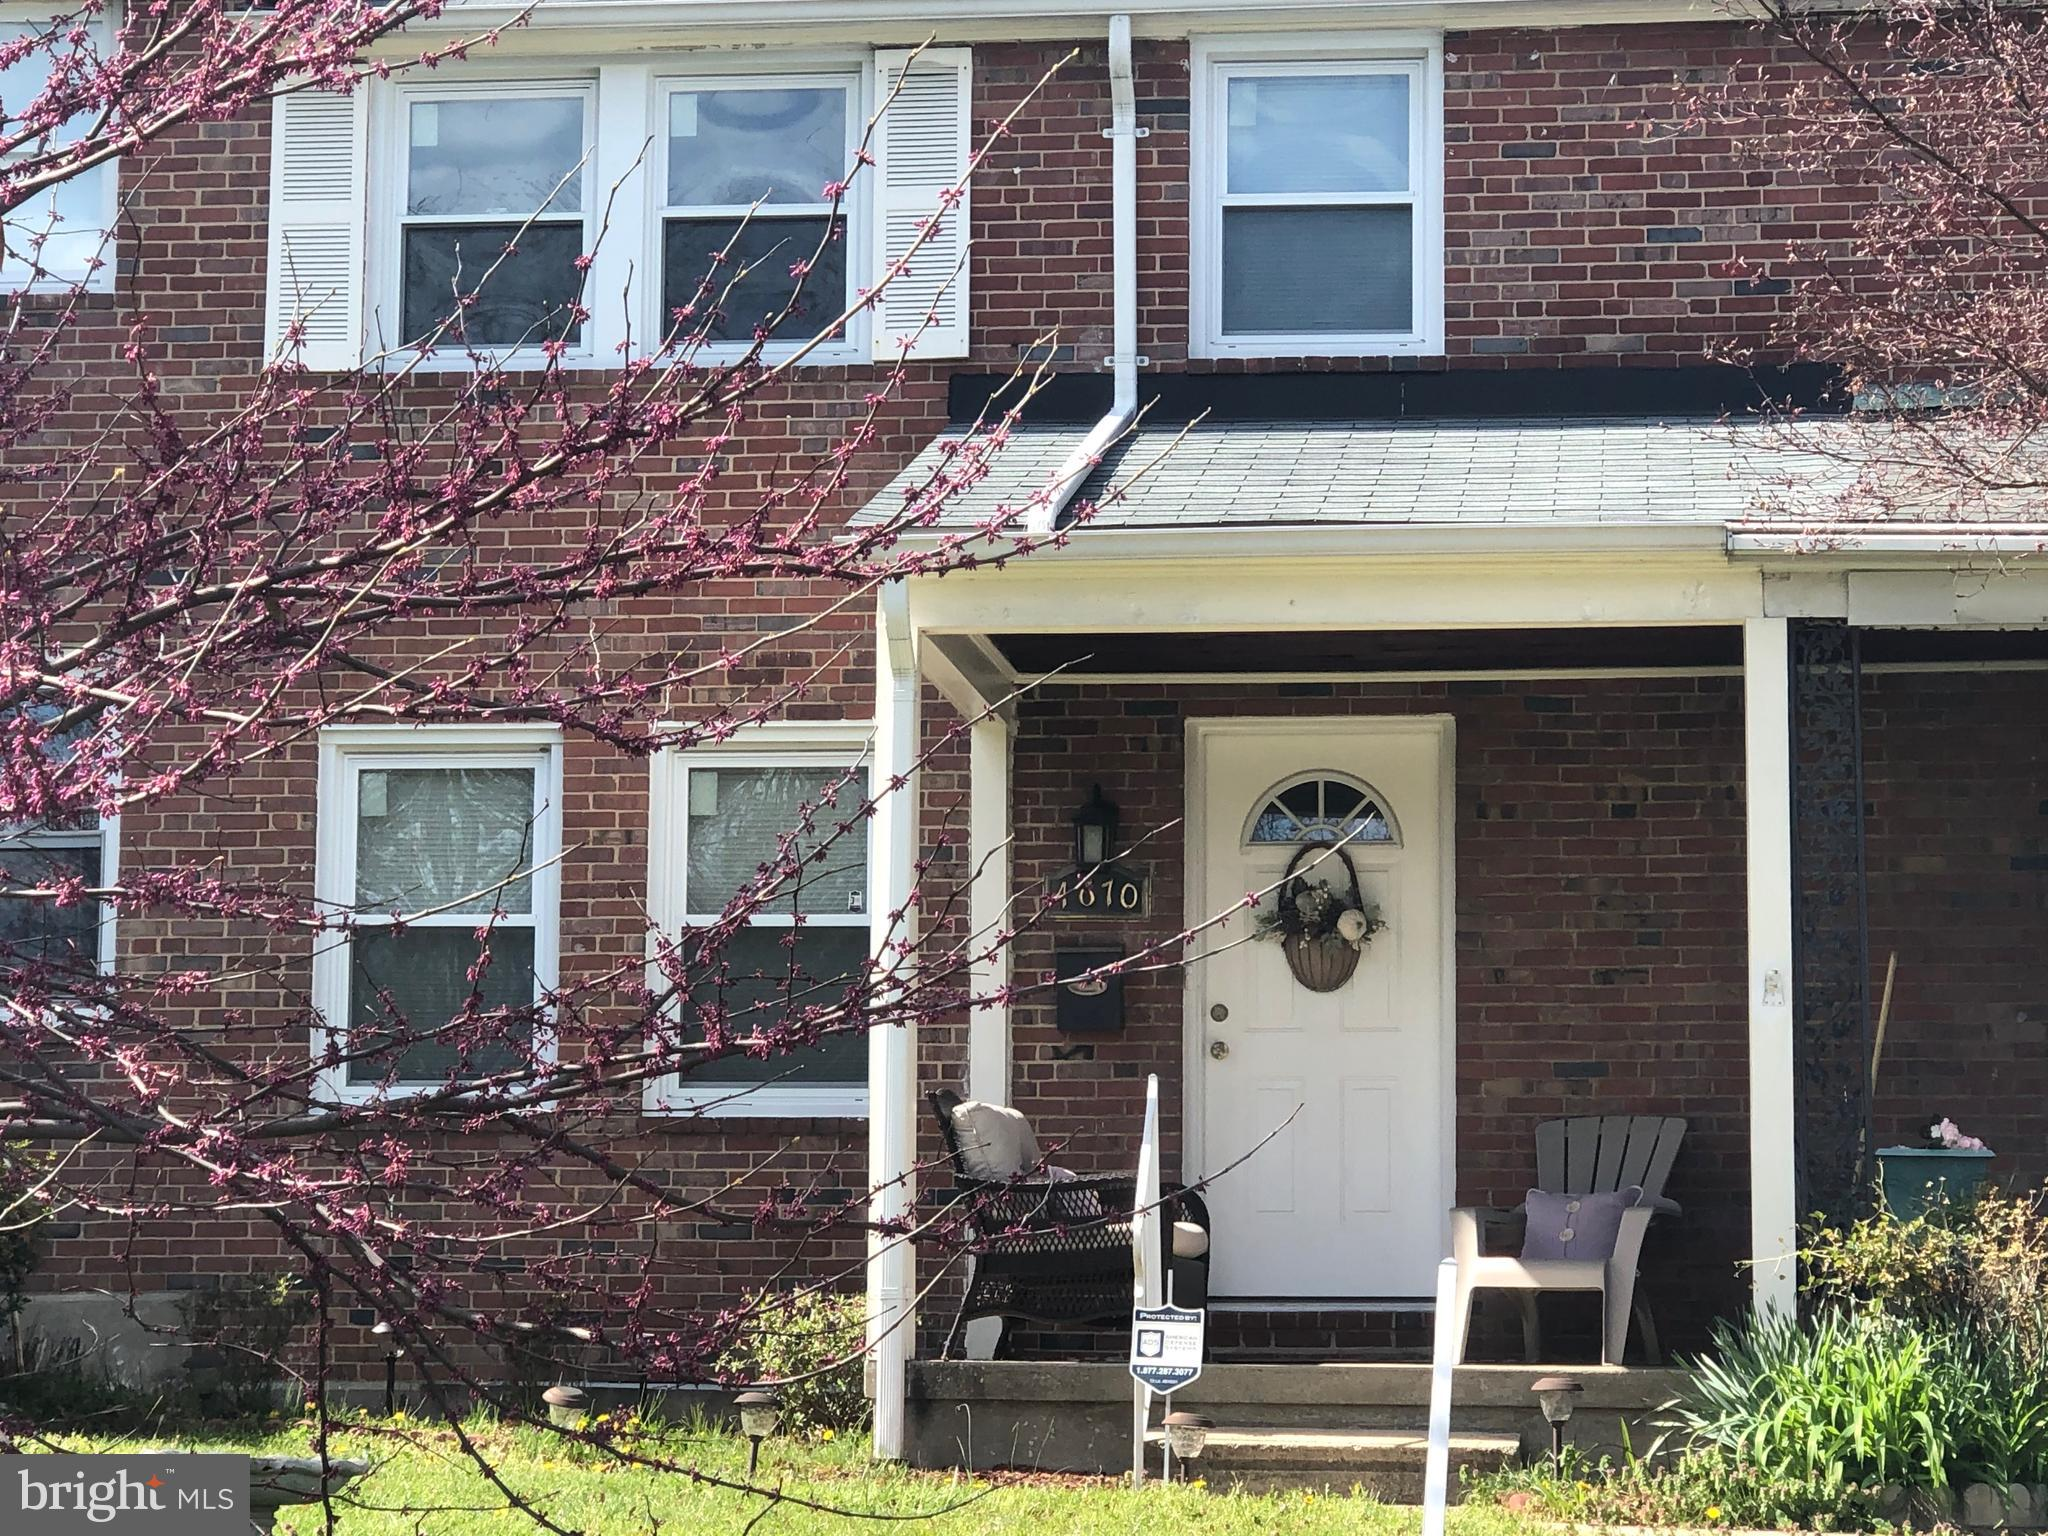 4670 MARBLE HALL ROAD, BALTIMORE, MD 21239